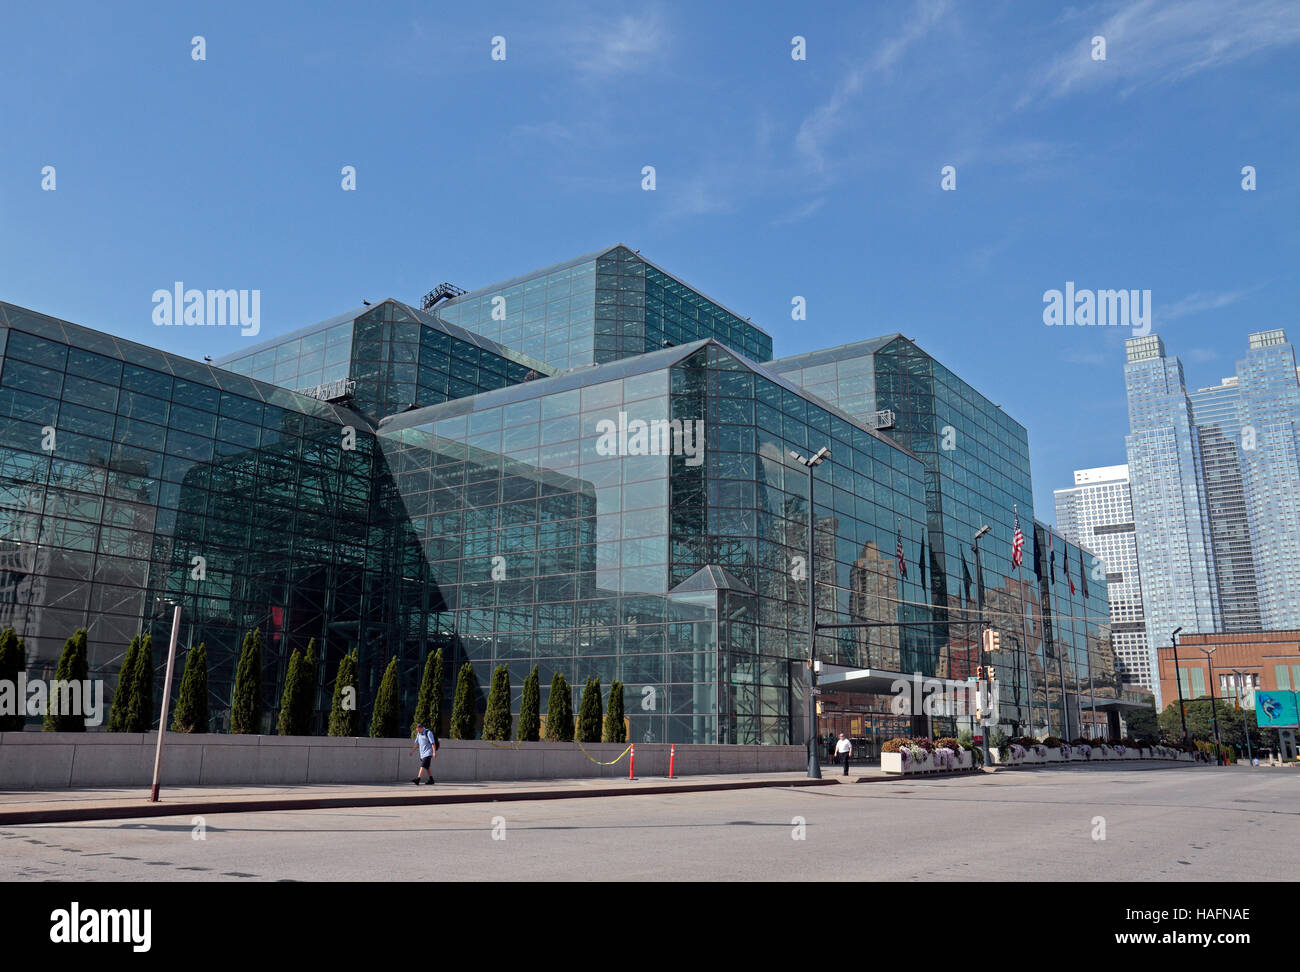 The Jacob K. Javits Convention Center (Javits Center) in Hell's Kitchen, Manhattan, New York City, United States. Stock Photo